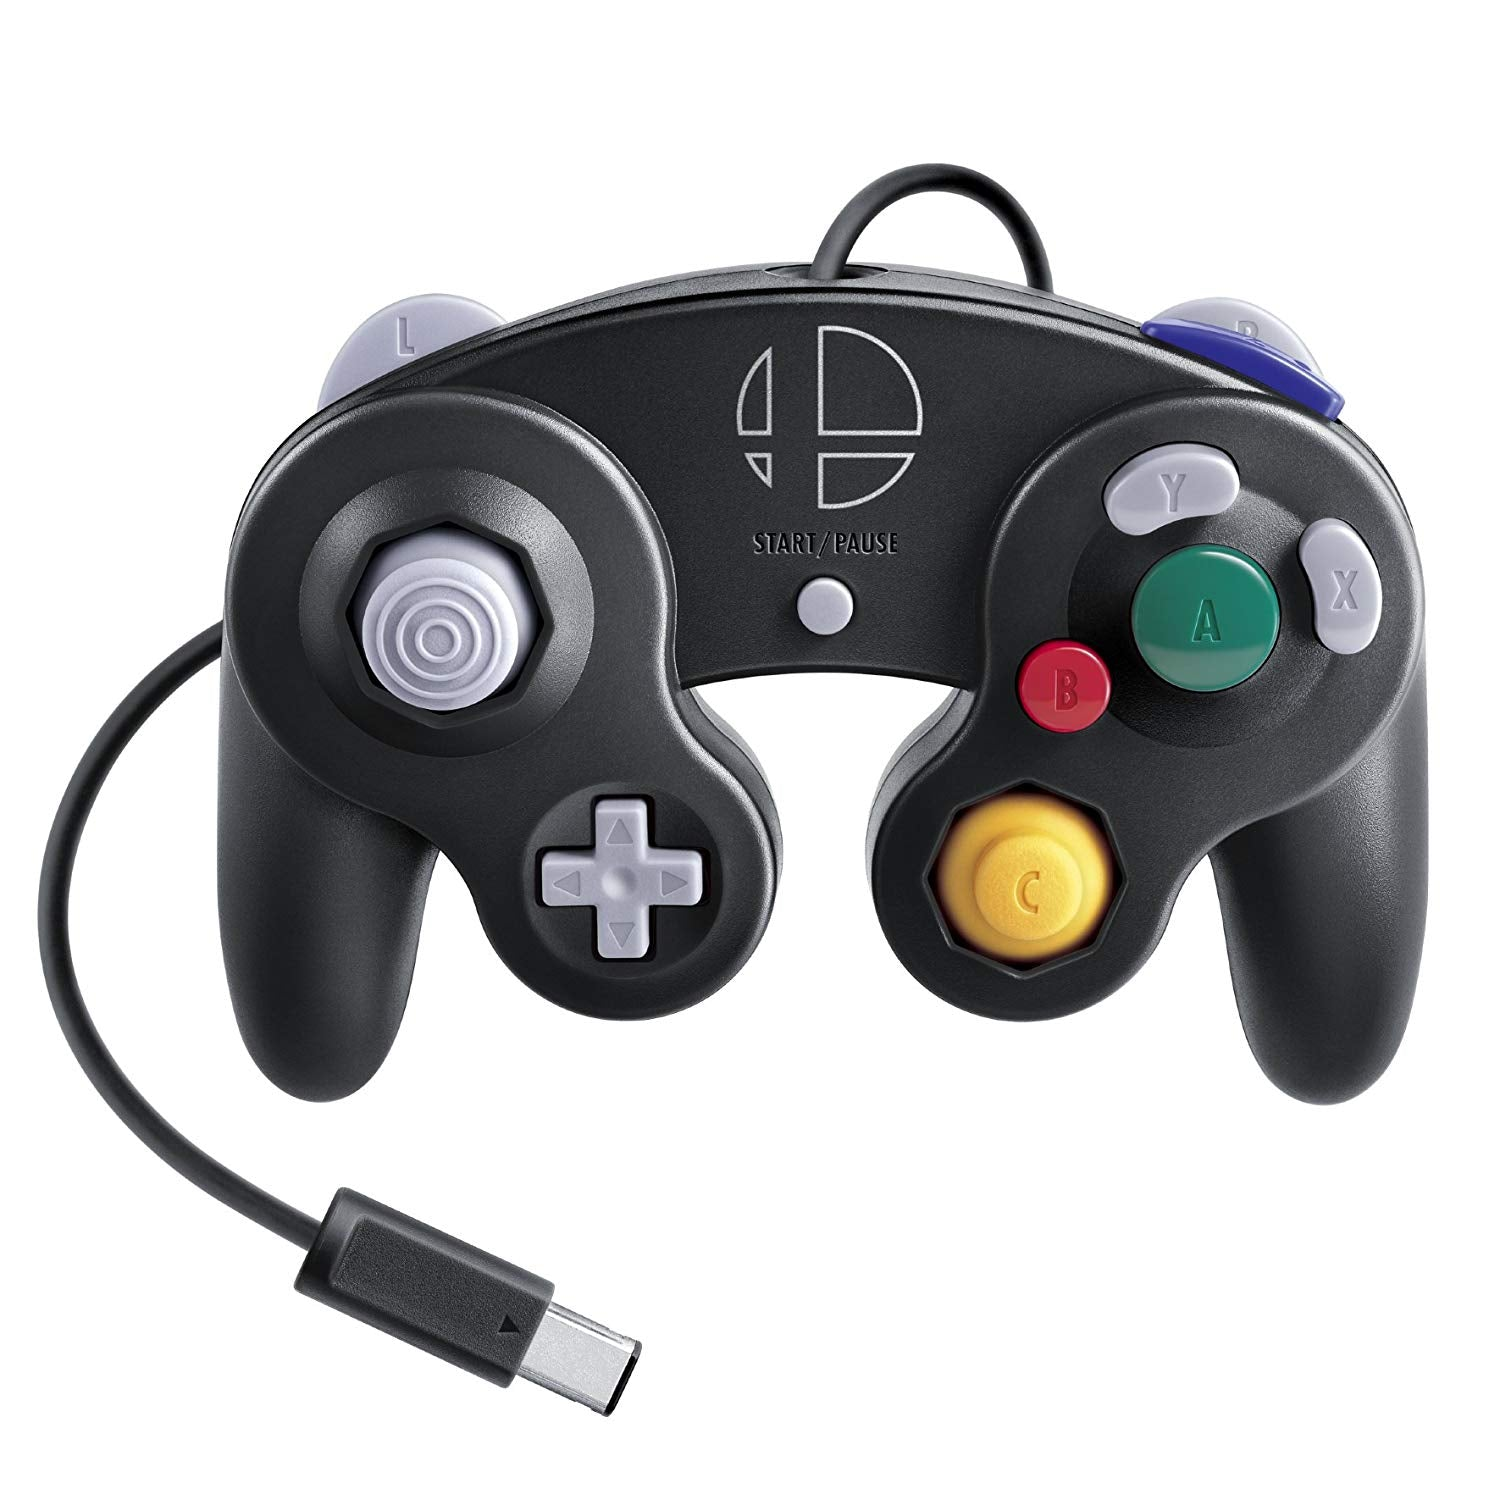 Super Smash Bros GameCube Controller